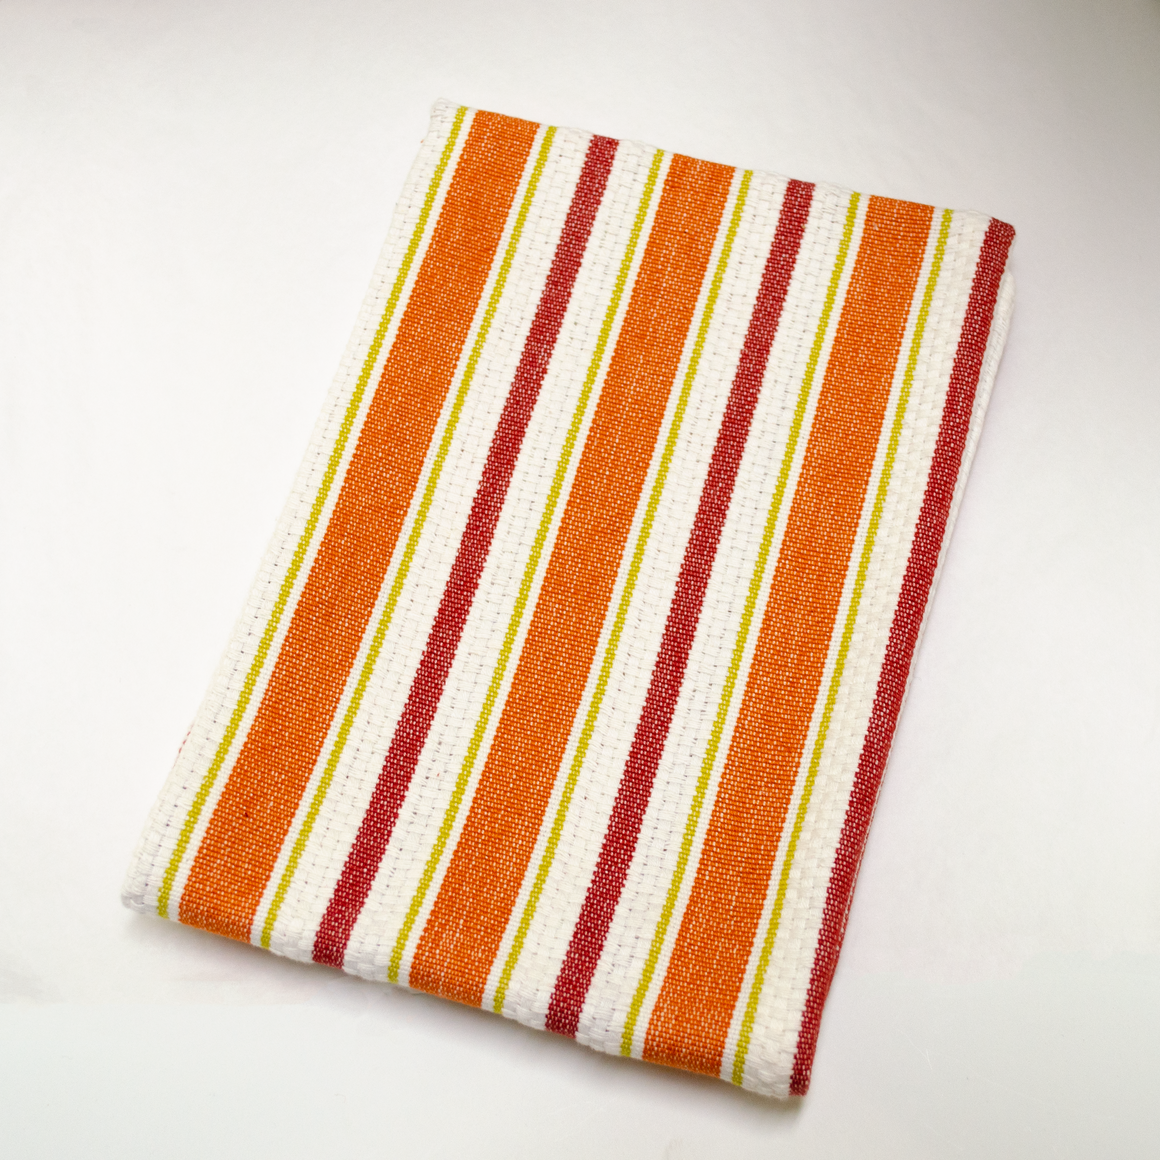 Farmer Plaid Towel - Rust